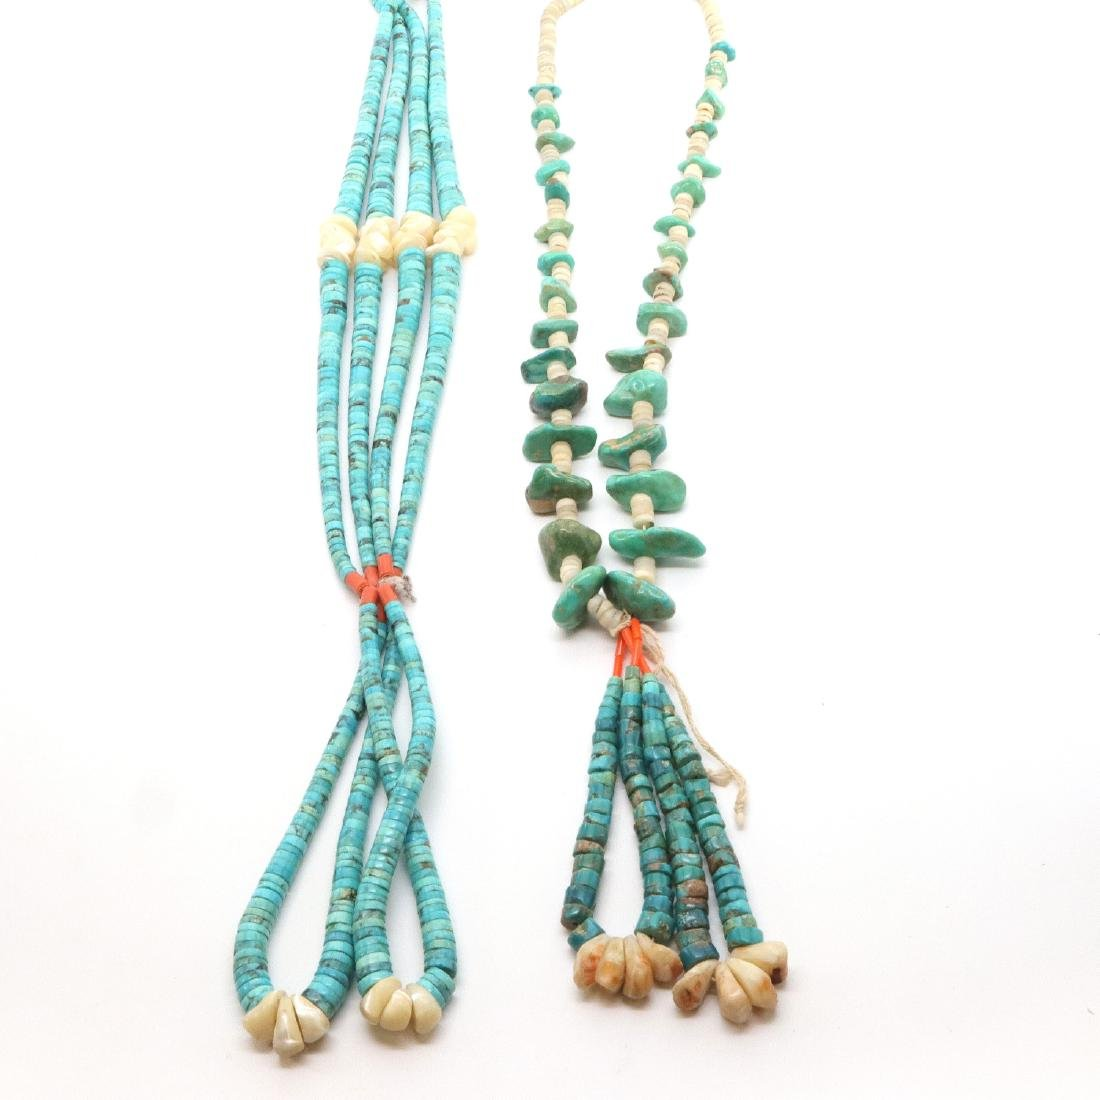 2 American Southwest Beaded Necklaces - 3